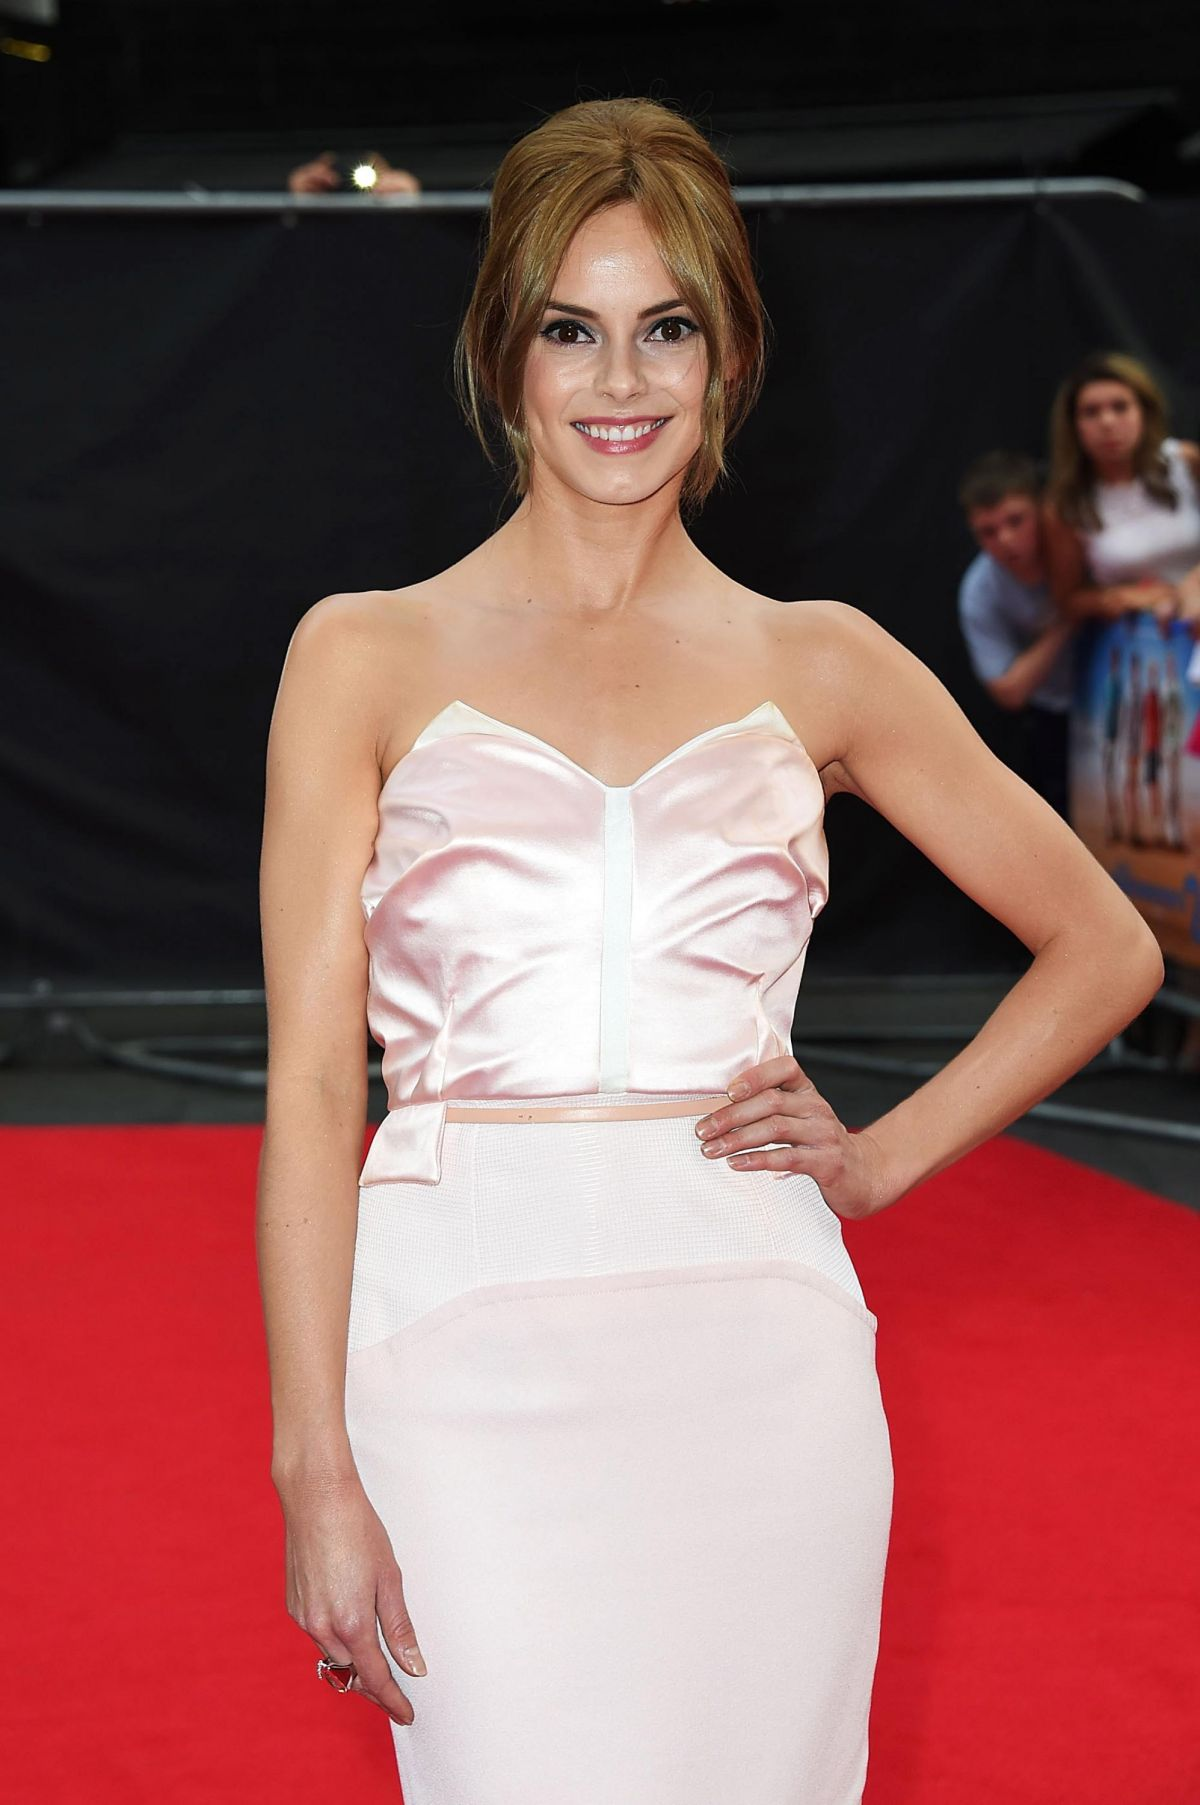 HANNAH TOINTON at The Inbetweeners 2 Premiere in London